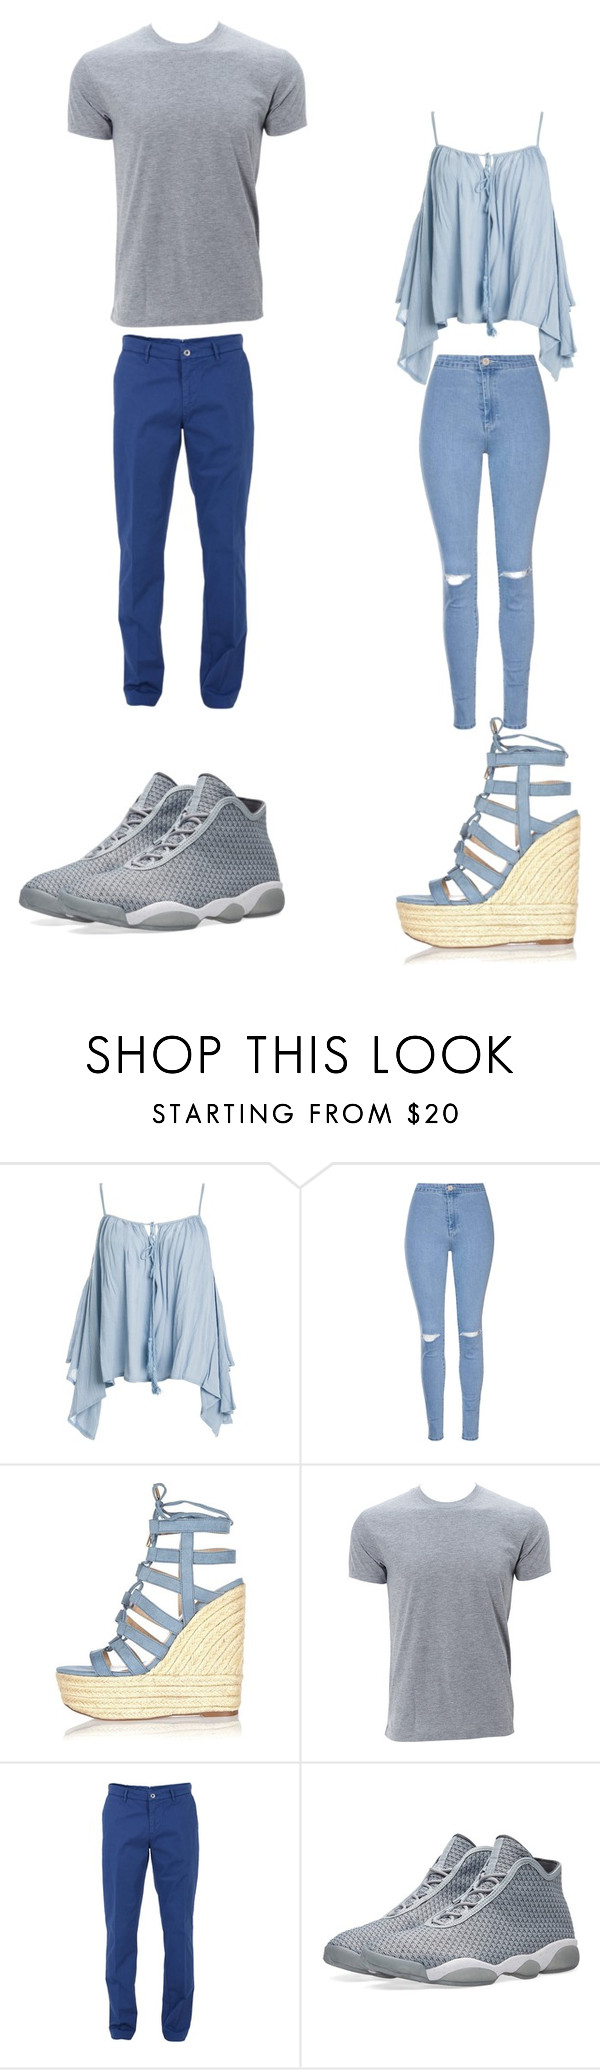 """""""Untitled #293"""" by kassidyrobinson on Polyvore featuring Sans Souci, Glamorous, River Island, Trussardi and NIKE"""